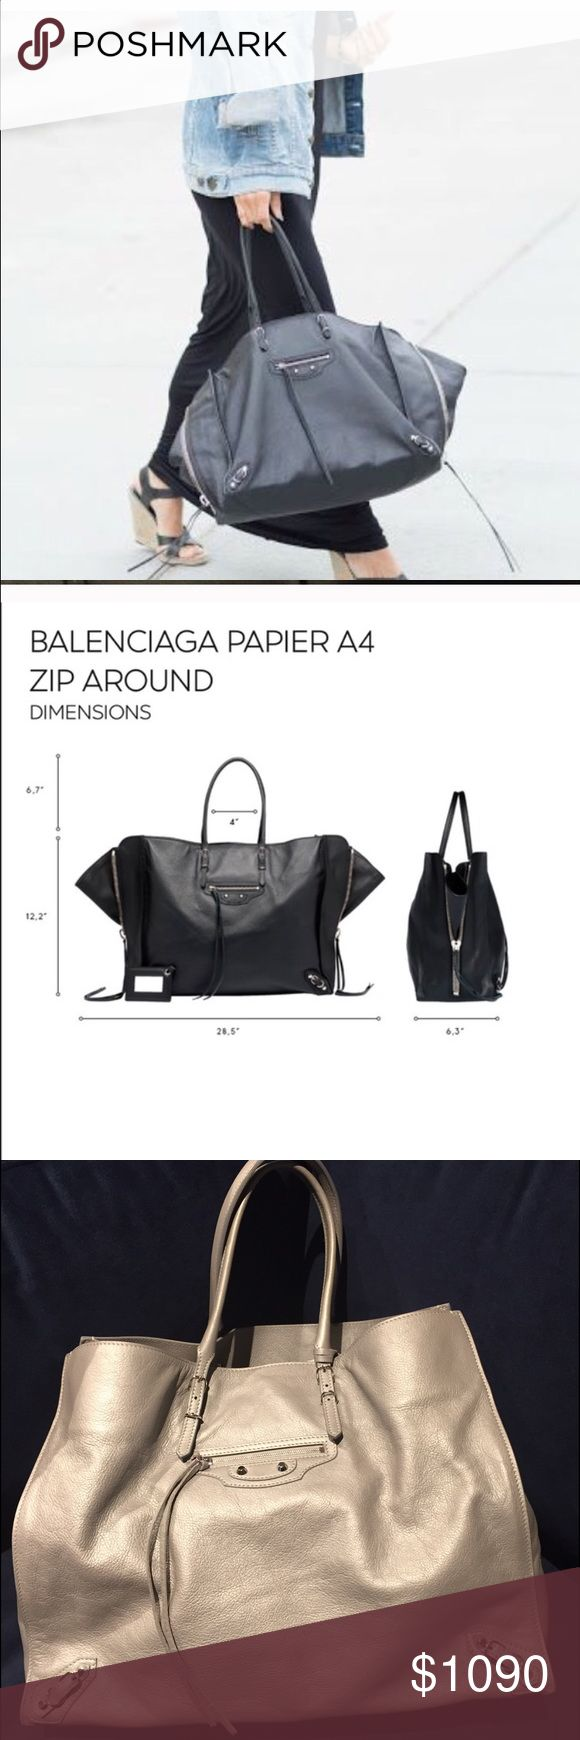 Balenciaga papier zip-around B4 AJ Tote Bag This bag is. Beauty!! It's a very IT HOT bag rightnow! I just got it today from another posher and it's in MInT condition don't really see any signs of wear but decided not to keep it. I do this all the time as I have some issues. Just trying recoup my cost. Balenciaga Bags